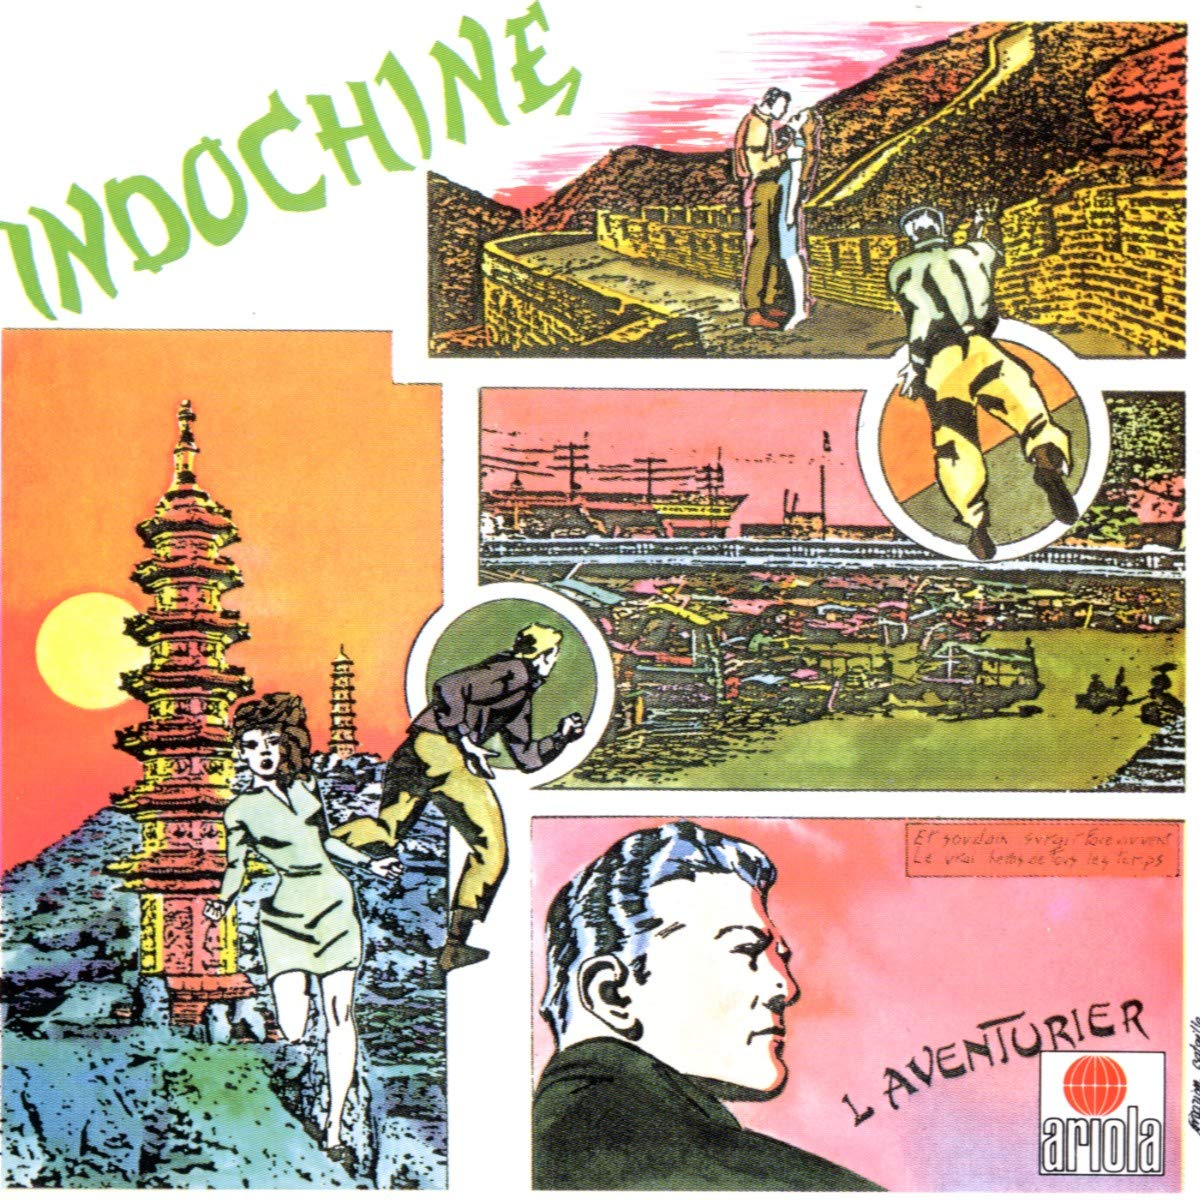 INDOCHINE MP3 LAVENTURIER TÉLÉCHARGER